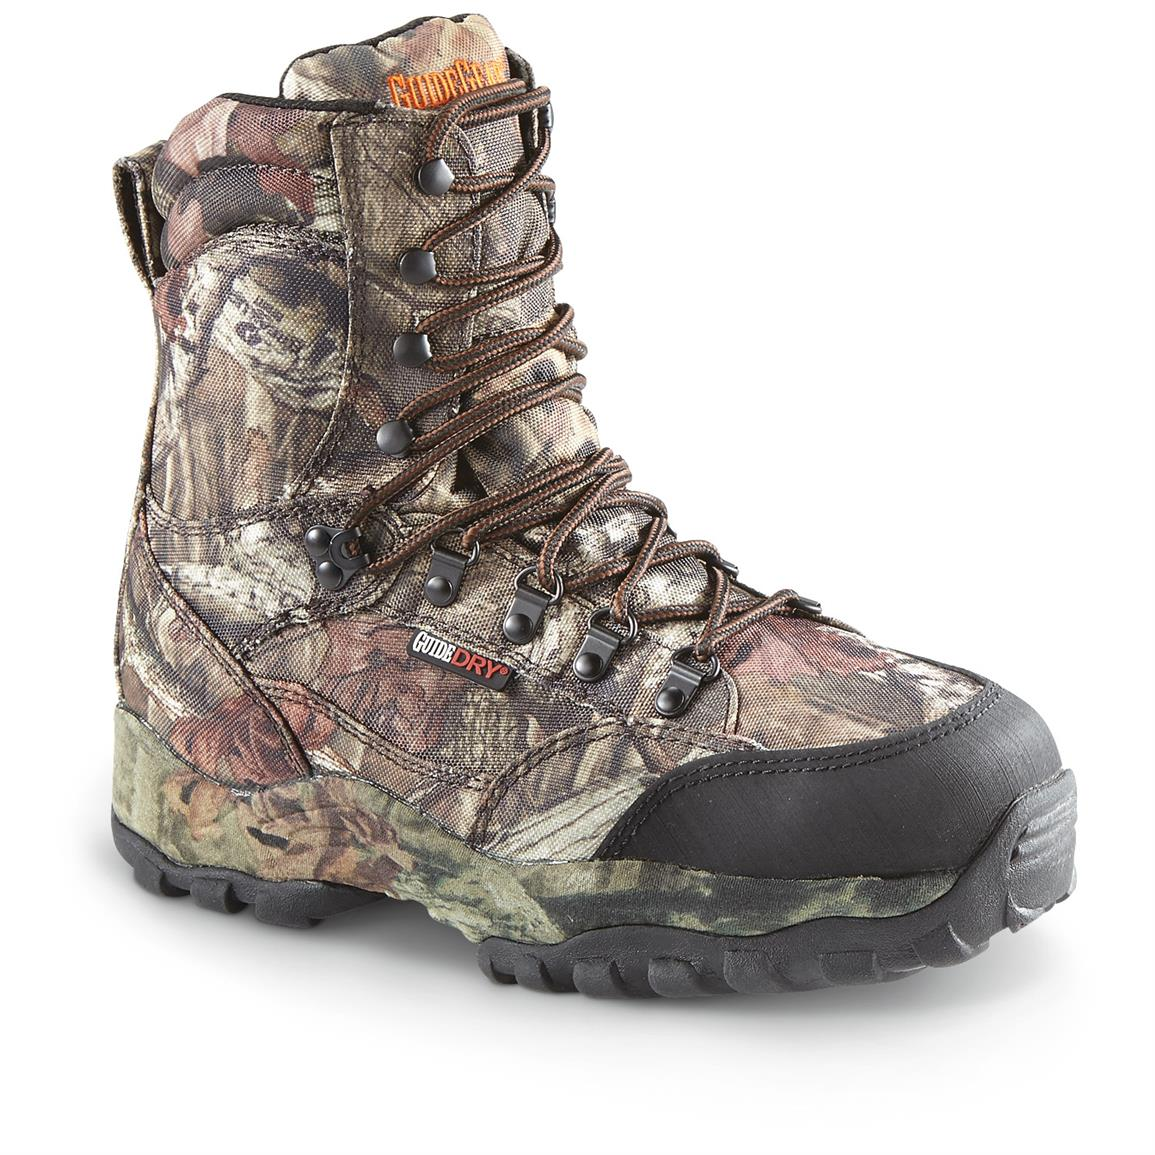 "Guide Gear Men's Guidelight II 8"" Insulated Waterproof Hunting Boots, Mossy Oak Infinity"